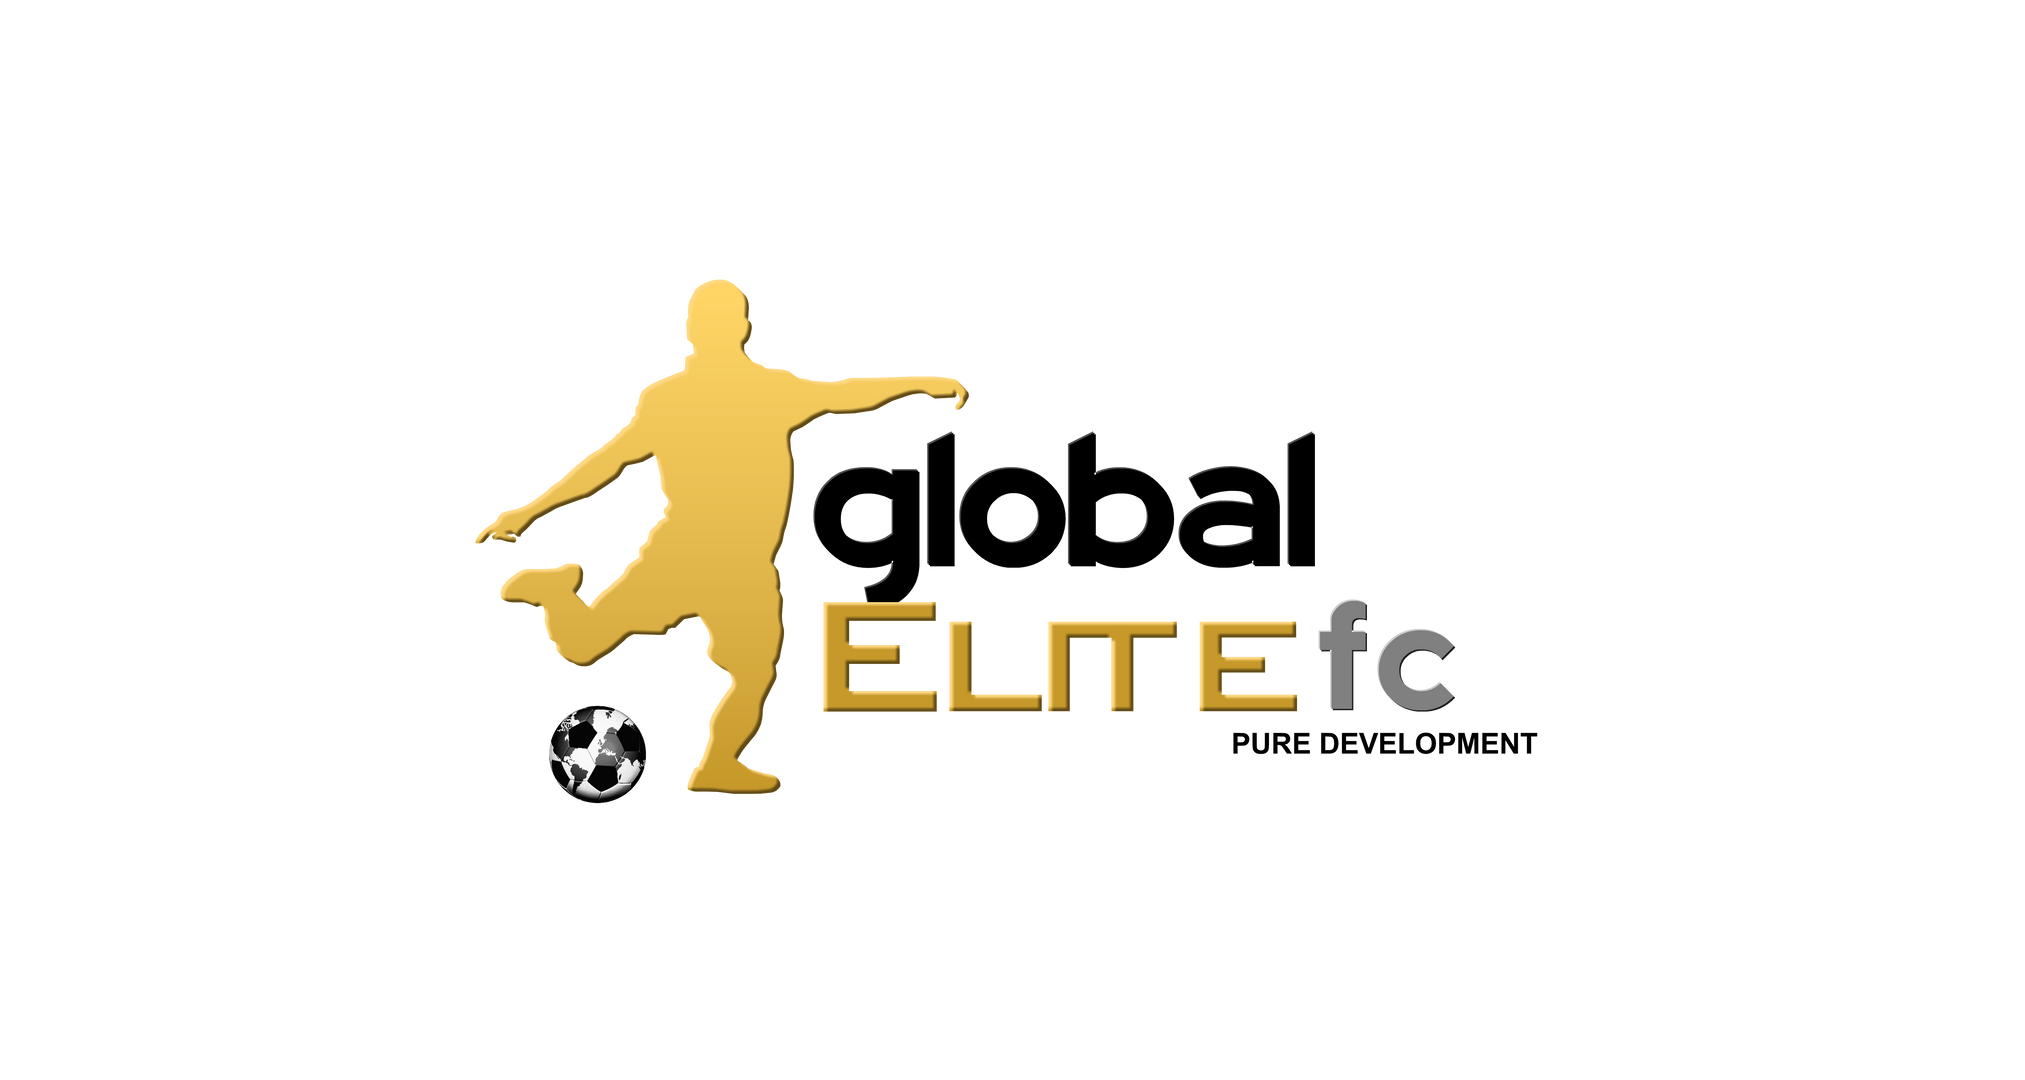 Global ELITE FC